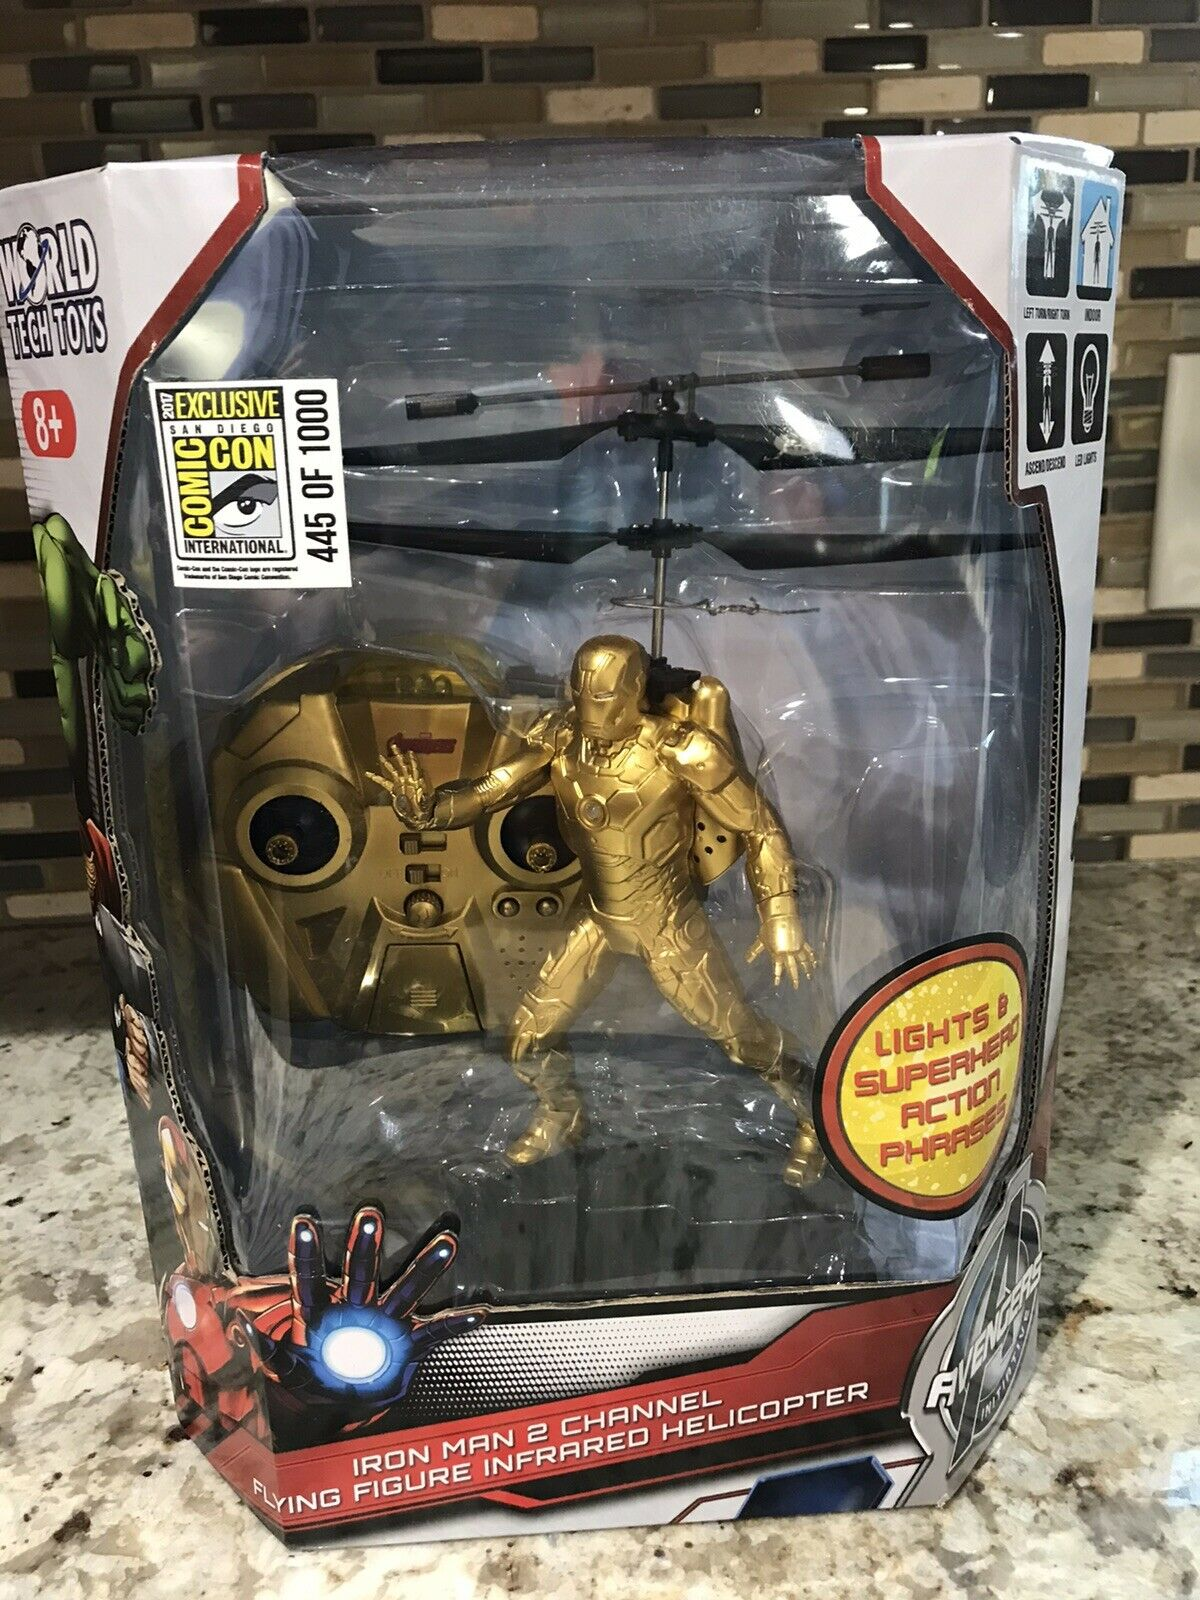 Avengers Avengers Avengers Iron Man 2 Channel Flying Figure Comic Con Exclusive 445 RC Helicopter 92c